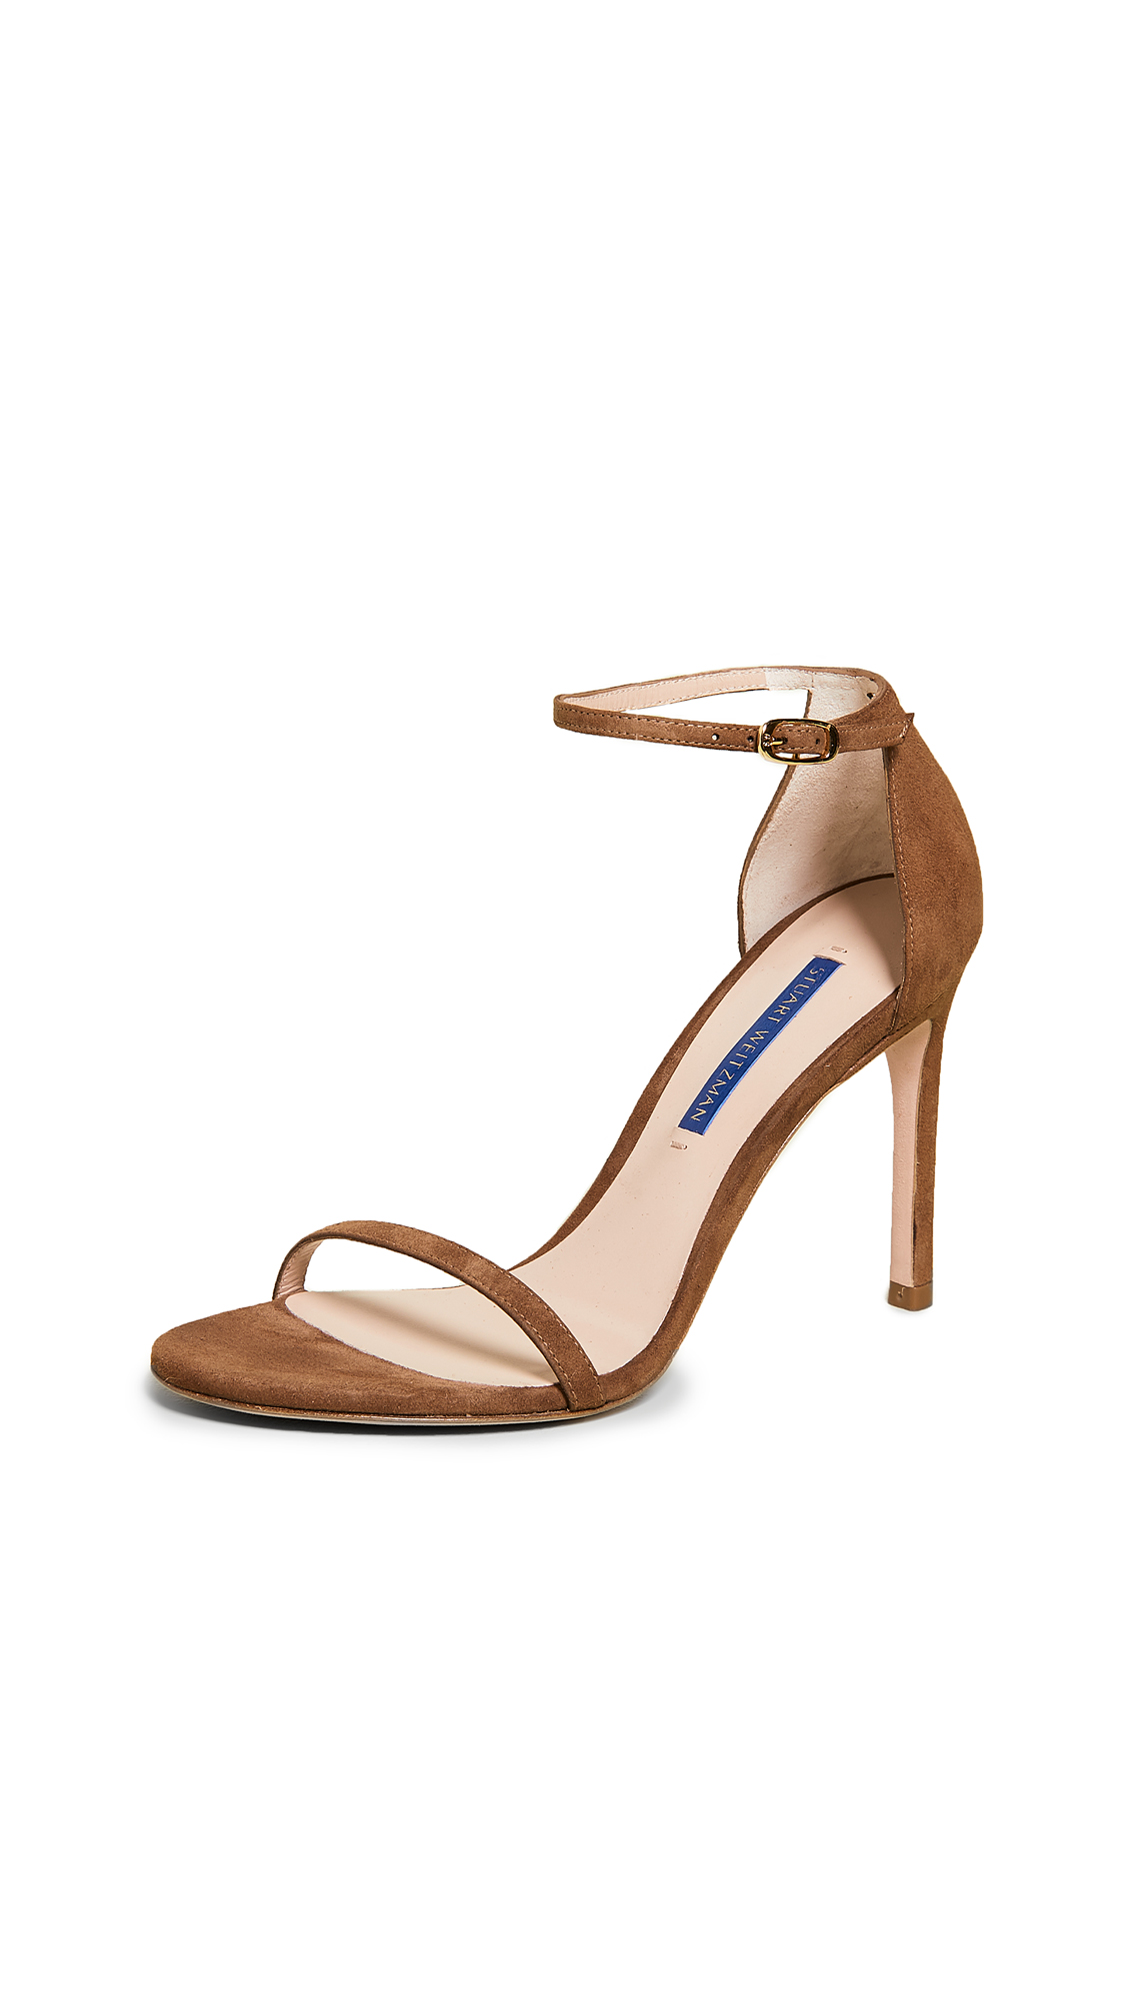 Stuart Weitzman Nudistsong Sandals - Basket Brown